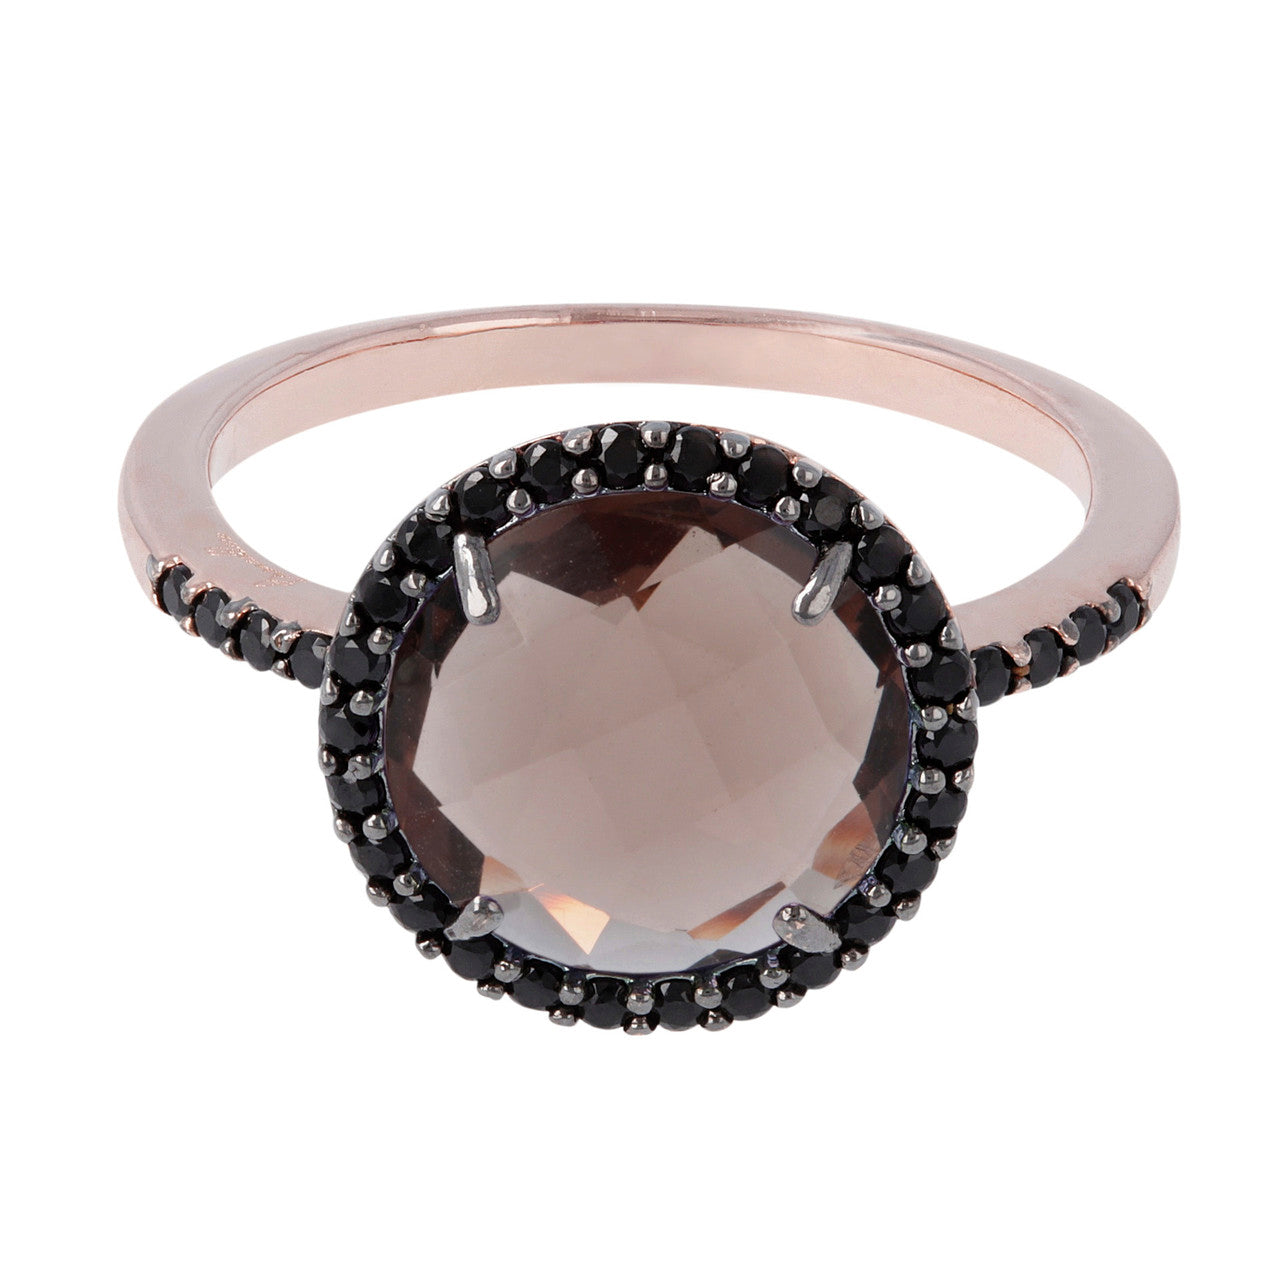 Solitaire engagement ring SMOKY QUARTZ setting